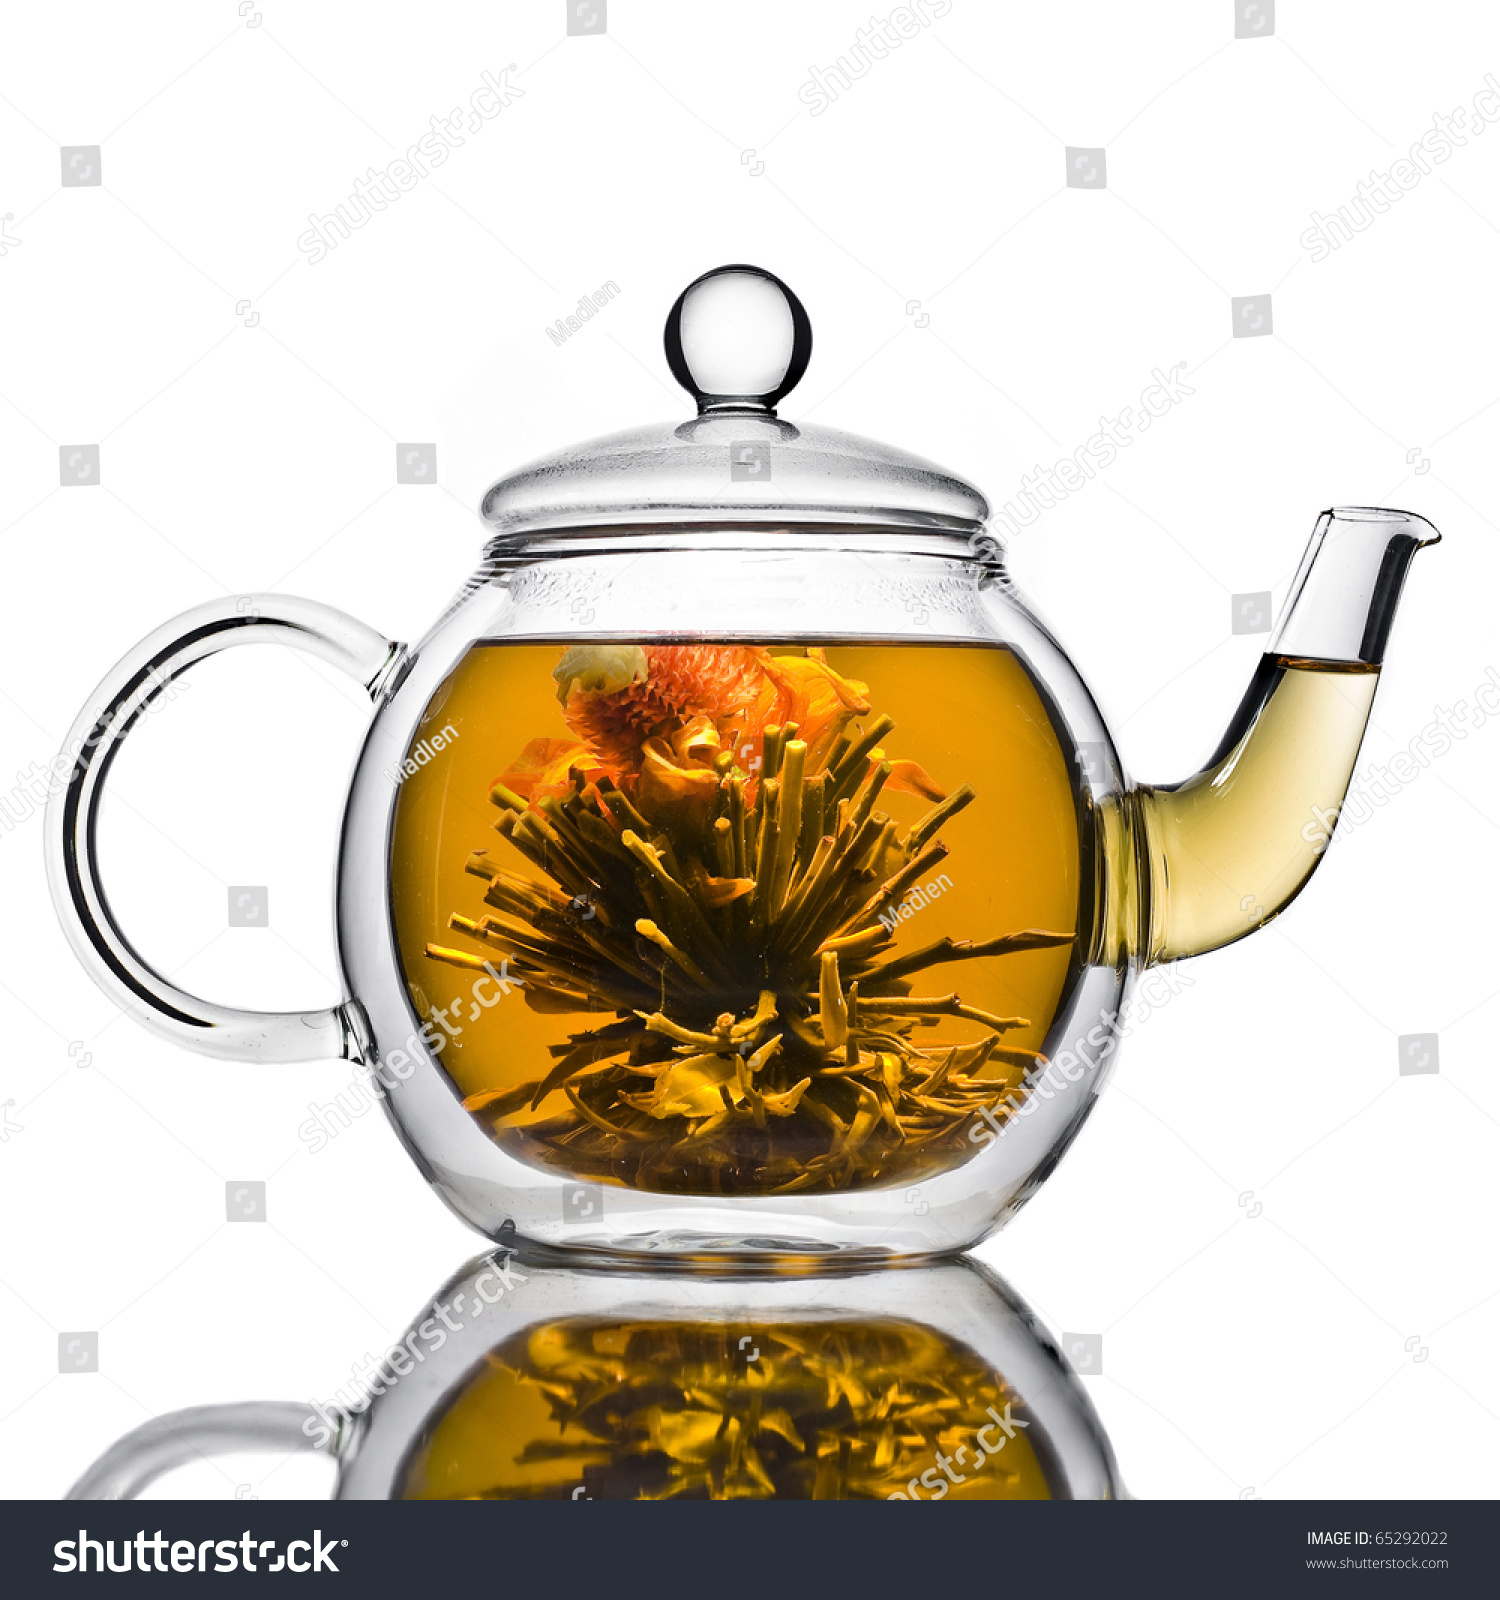 Chinese flower tea - A Glass Tea Pot With Flower Chinese Tea Isolated On A White Background